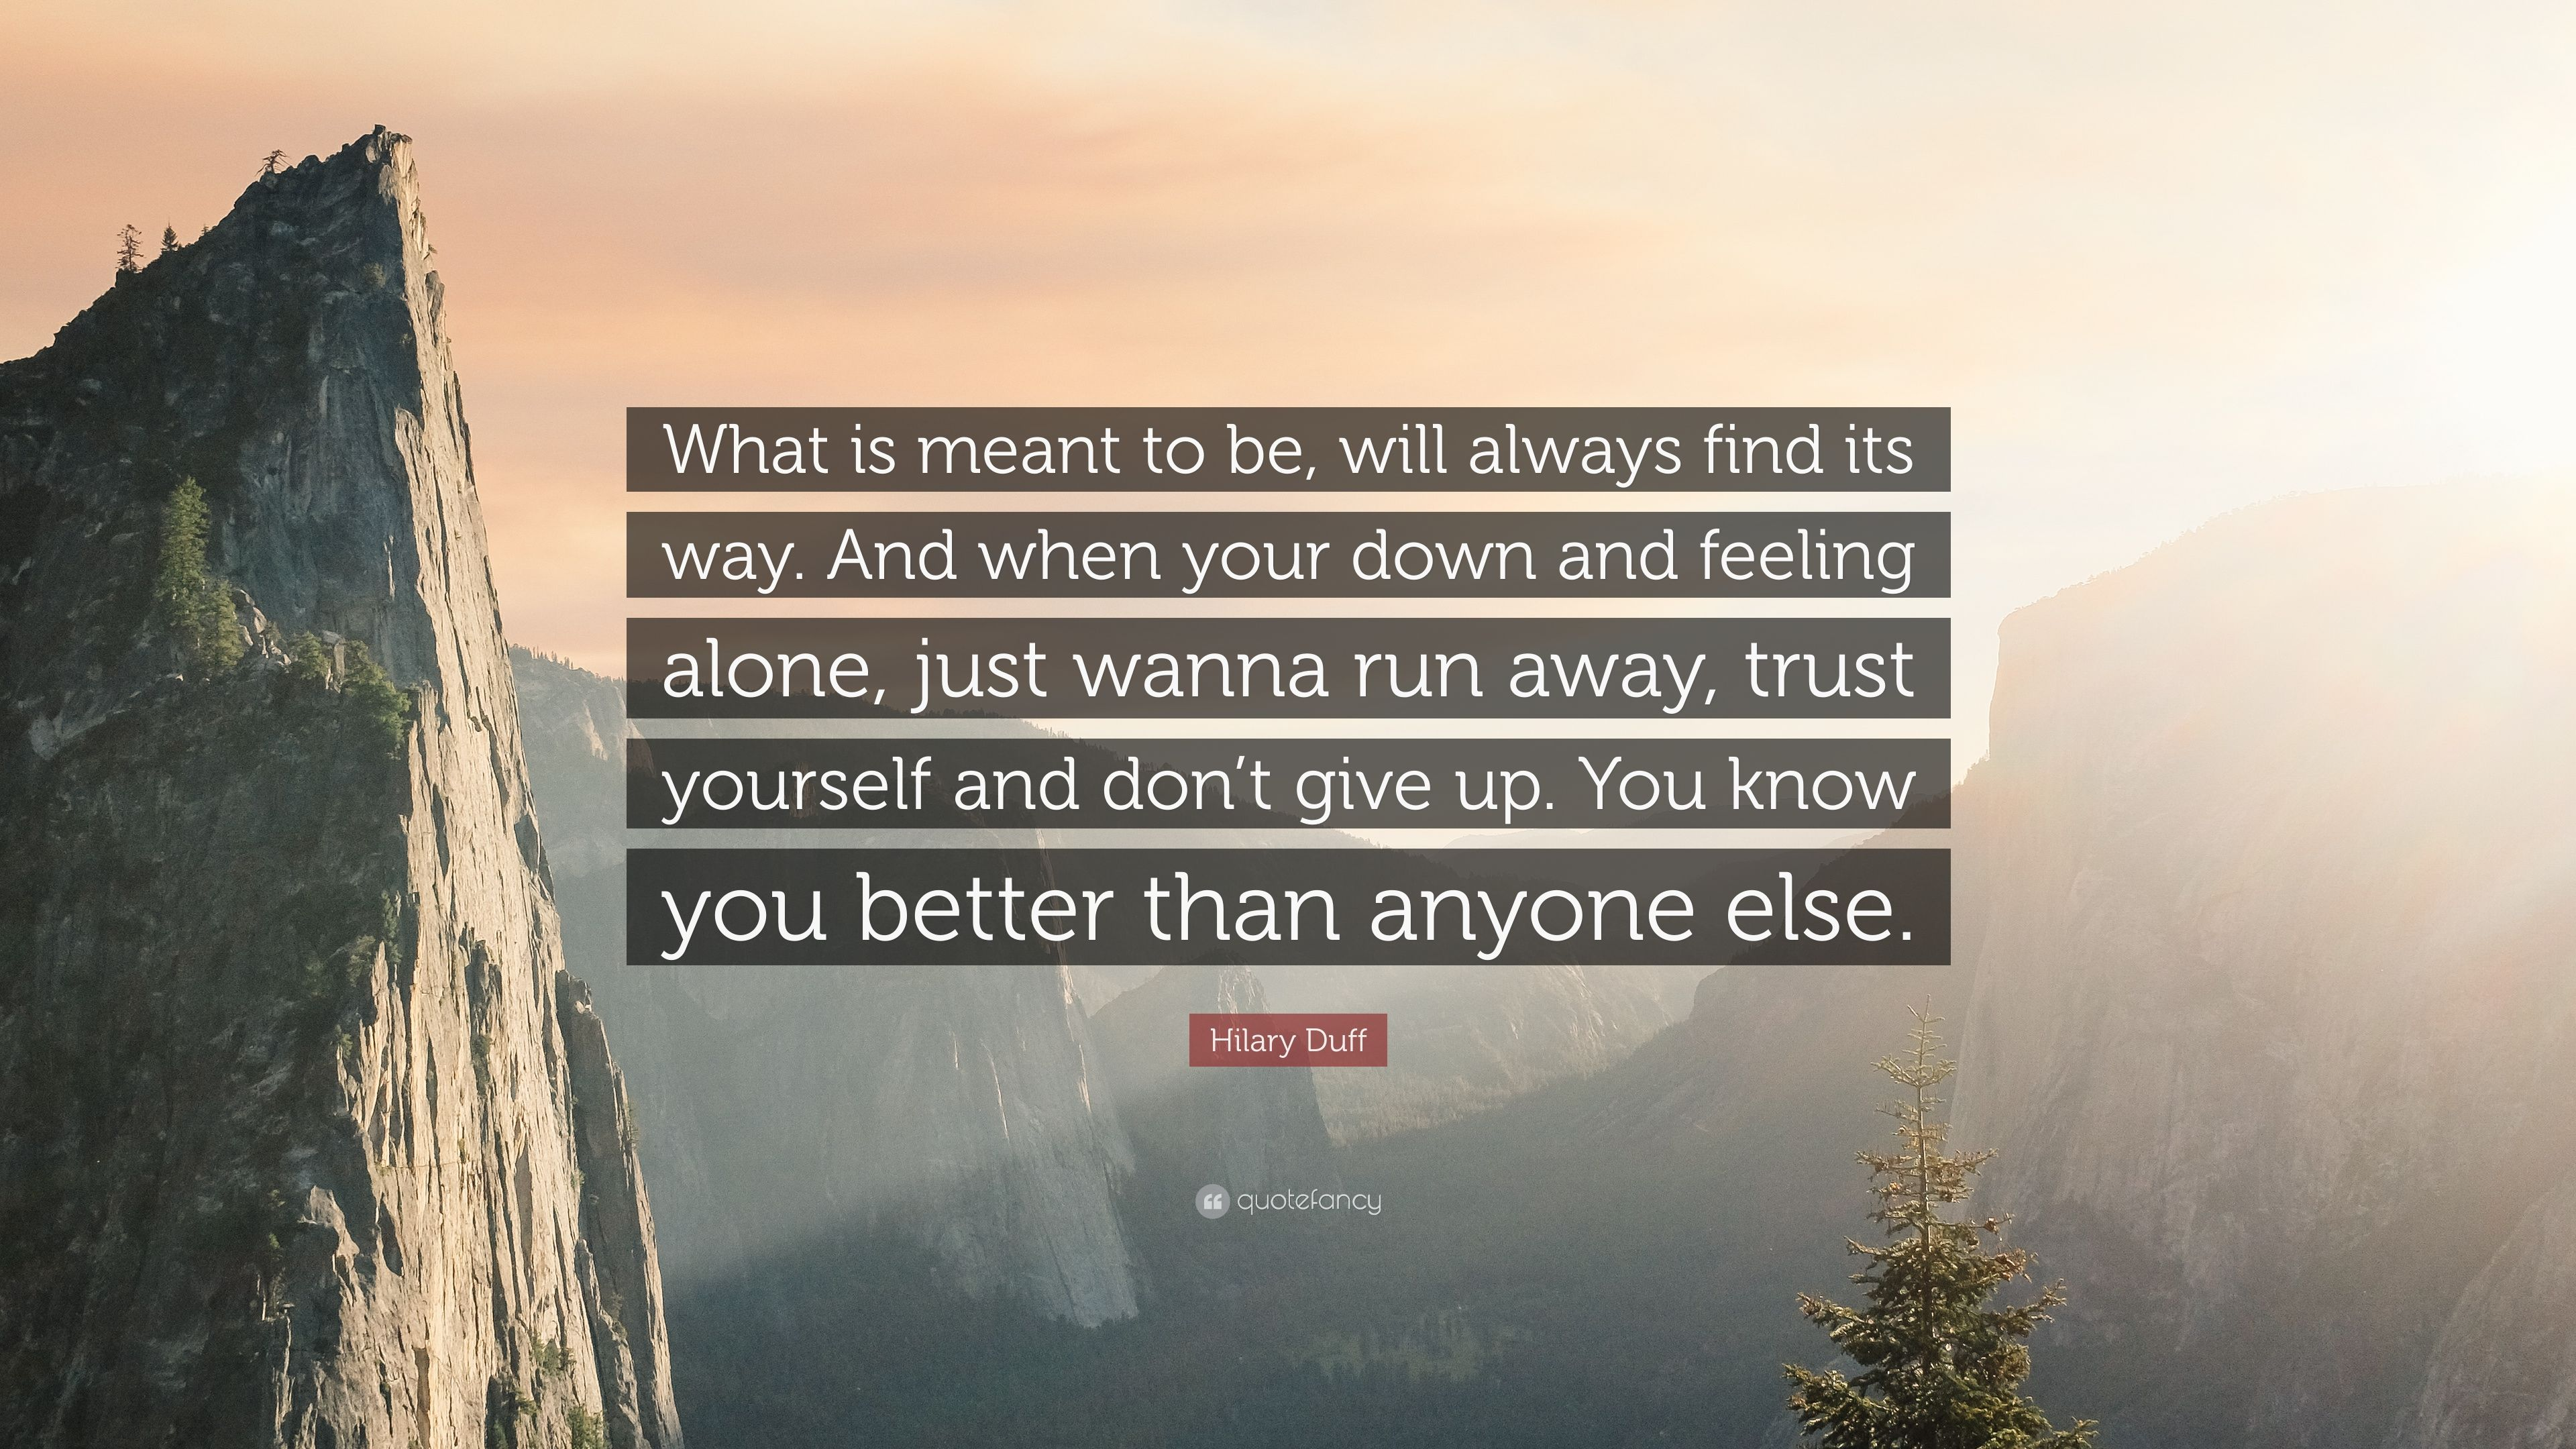 whats meant to be will find its way